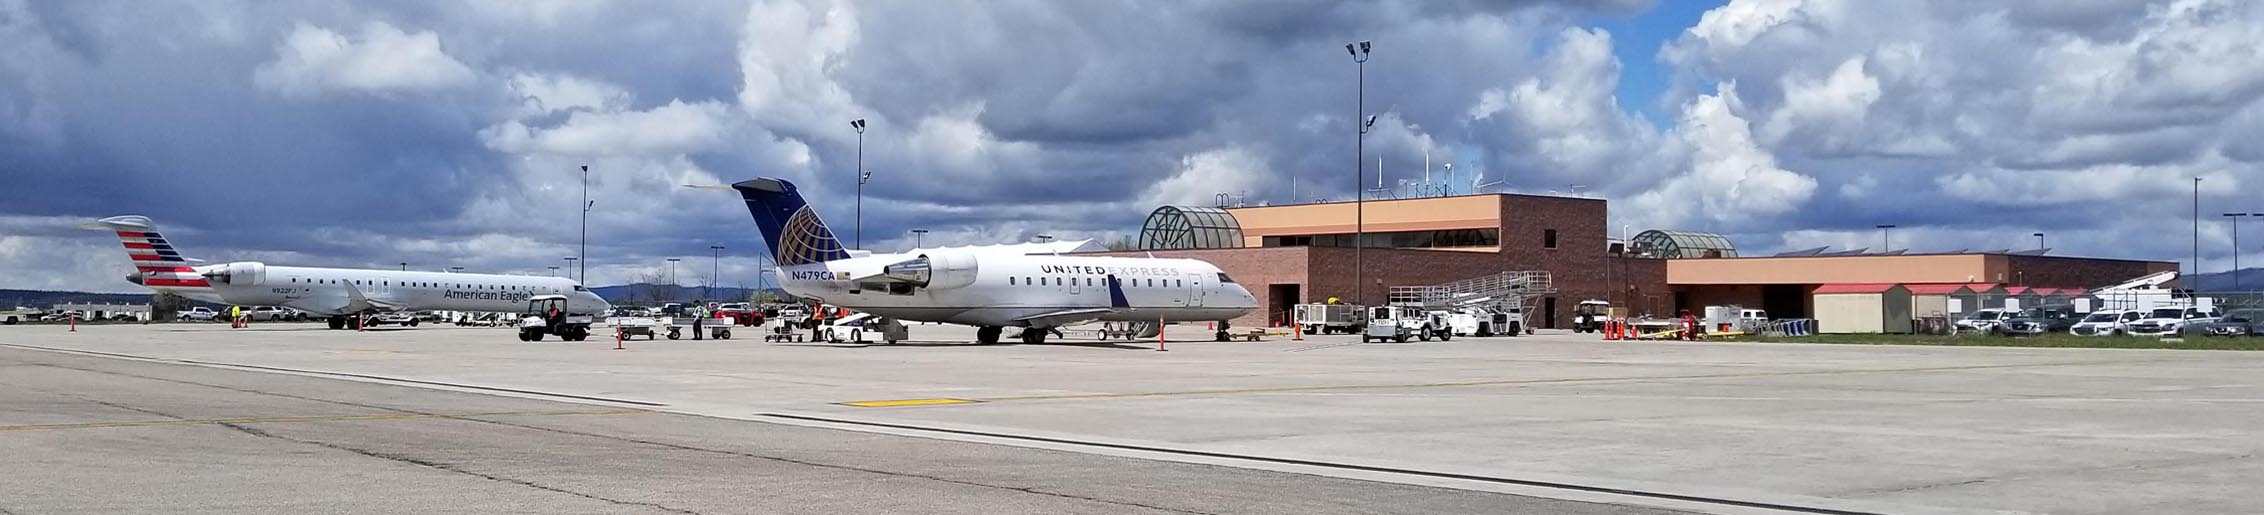 20190501 American and United jets on apron next to DRO terminal building